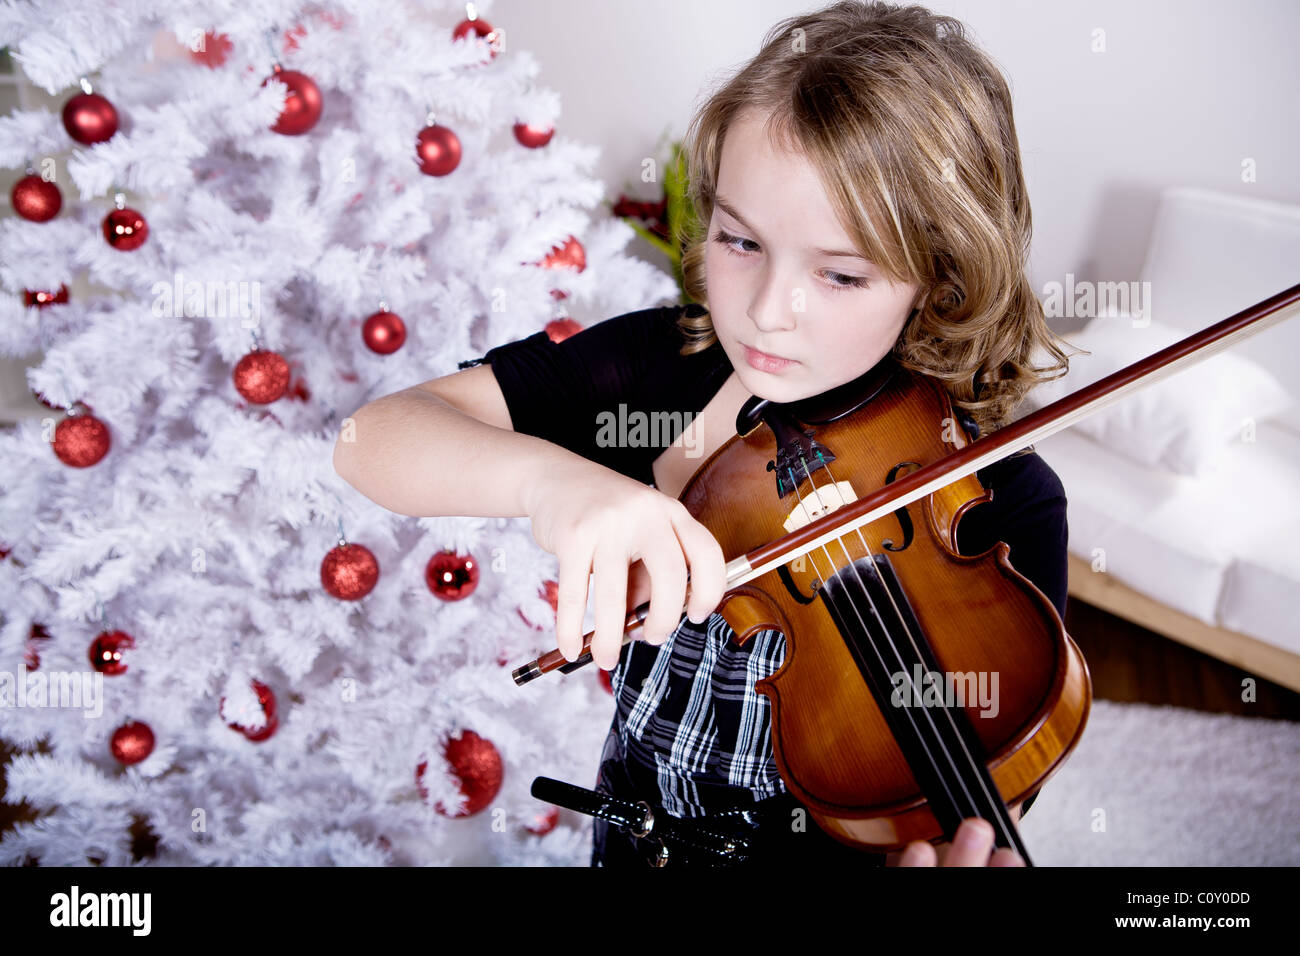 xmas time - Stock Image